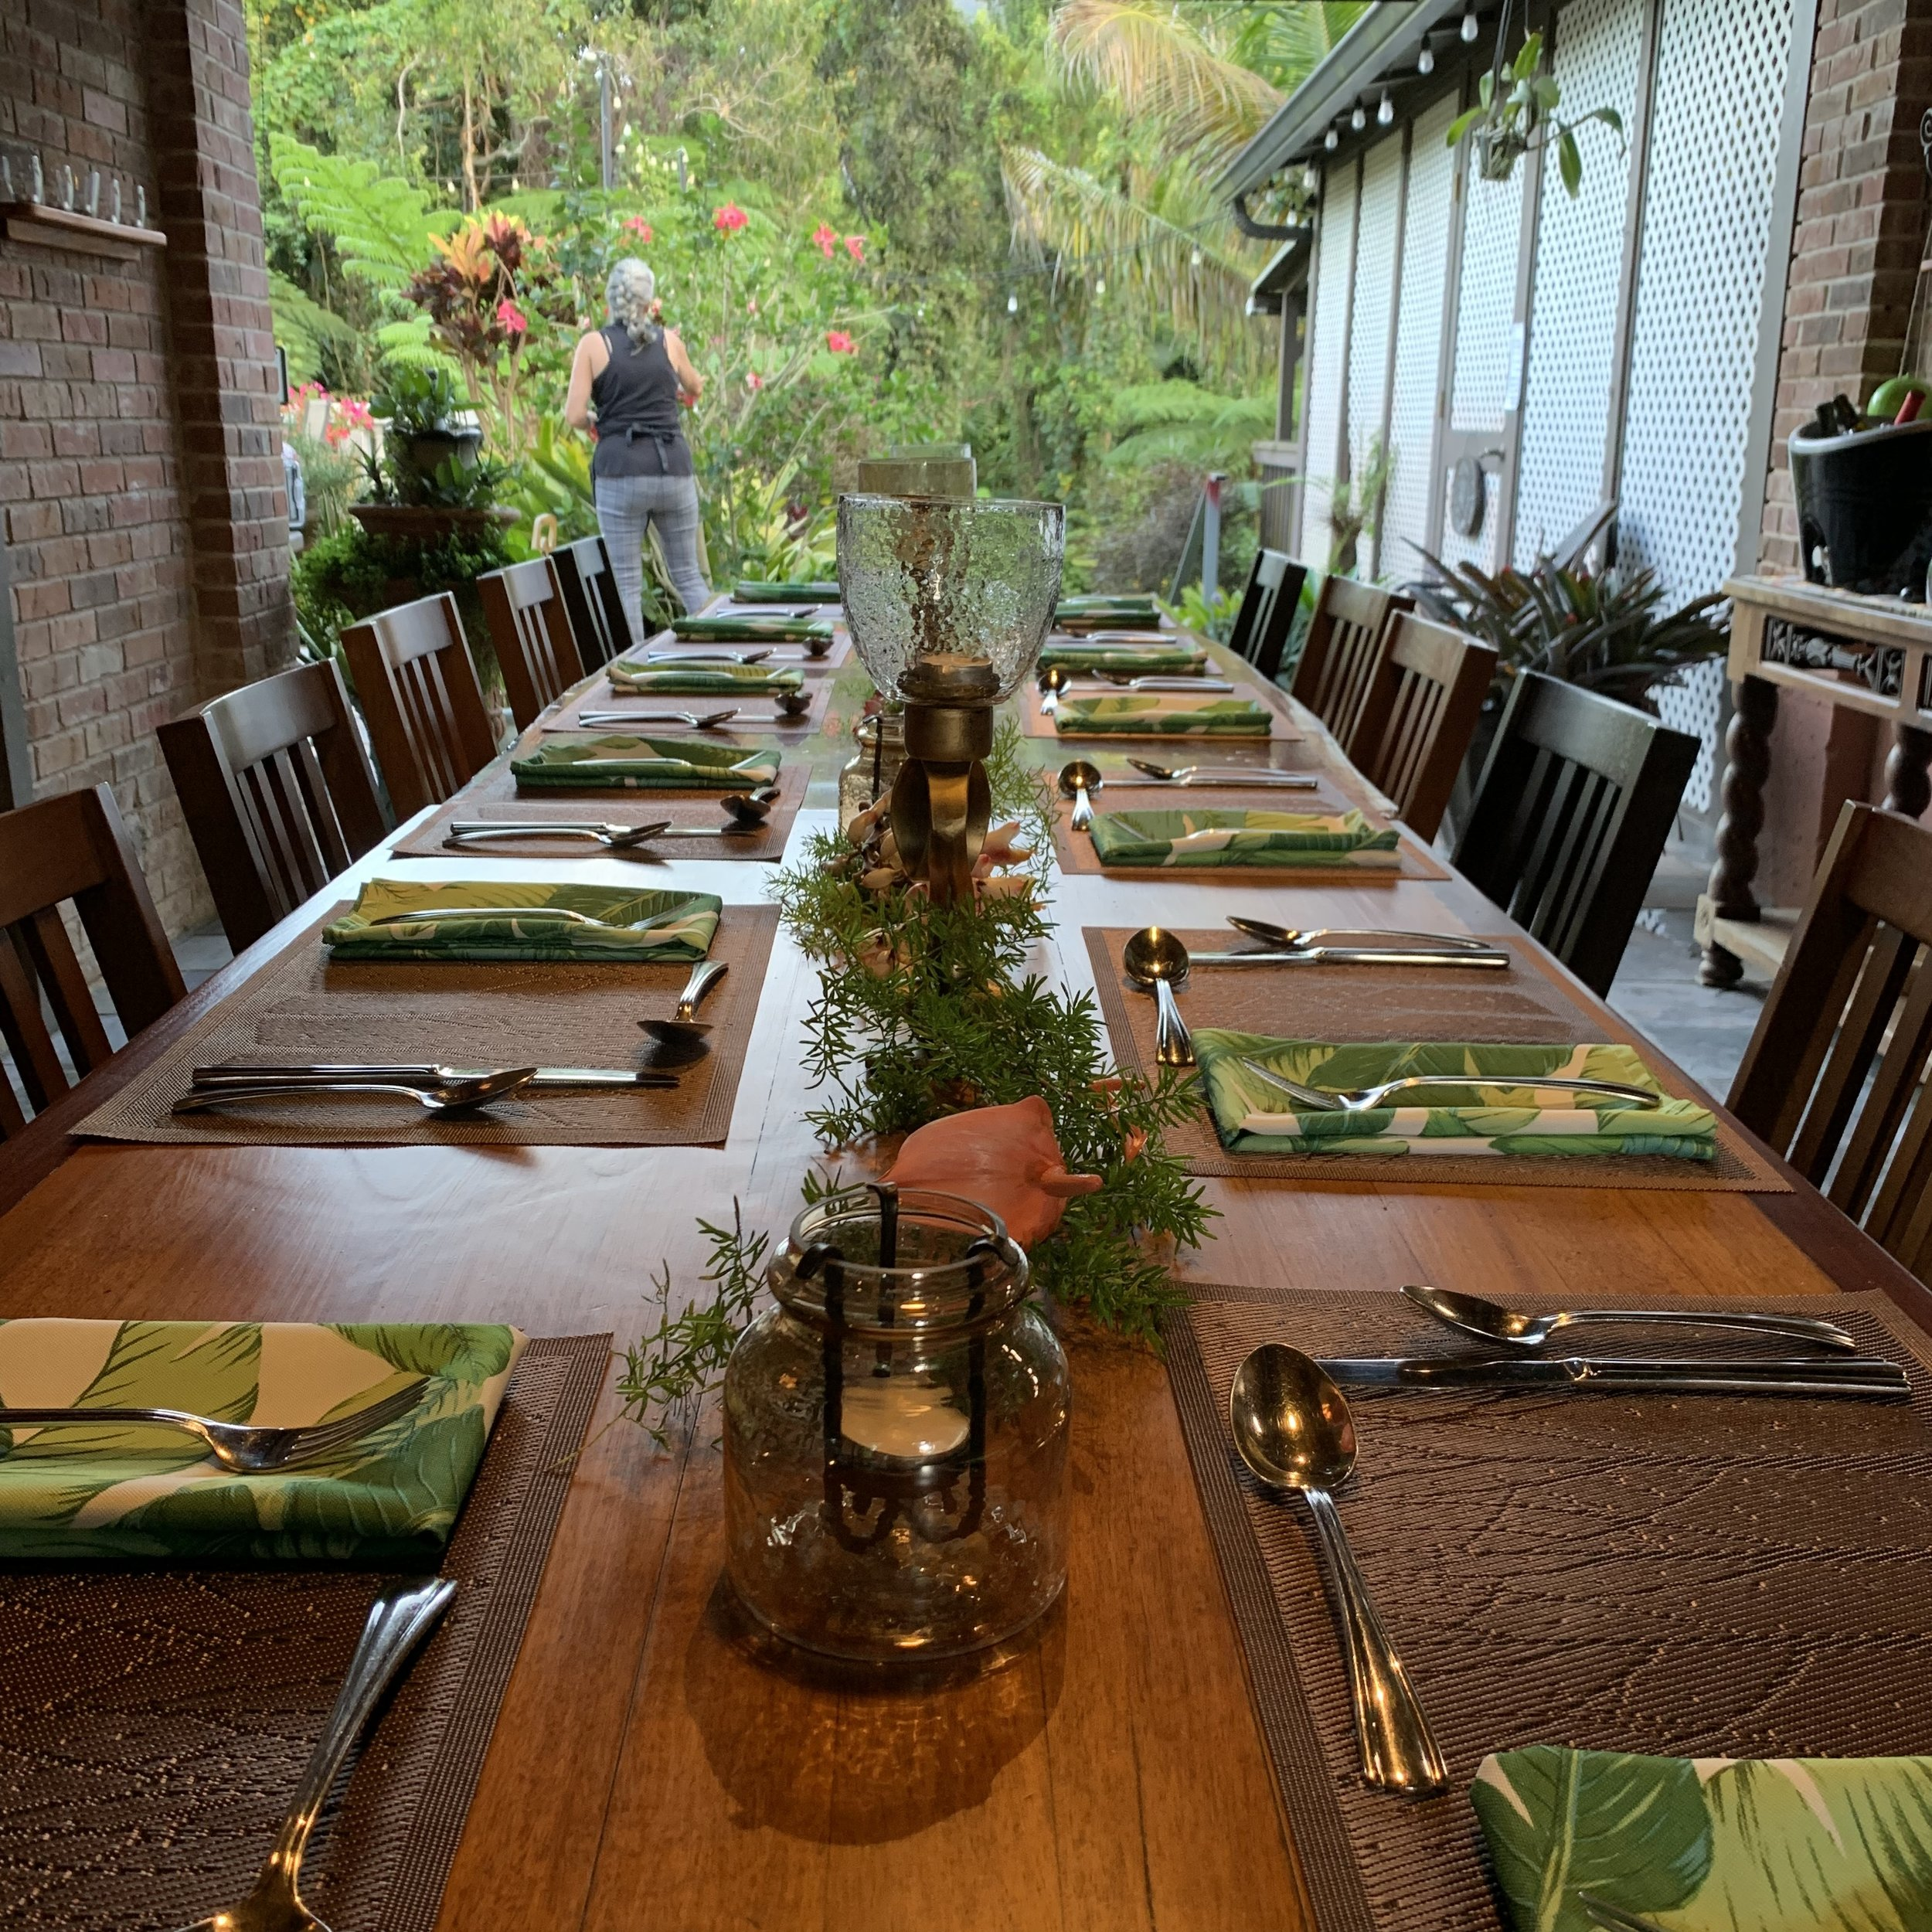 Like many of the ingredients in the meal, the table decorations also came from the property. You can see Renée picking Hibiscus in the background. And what a lovely view for a dinner party!